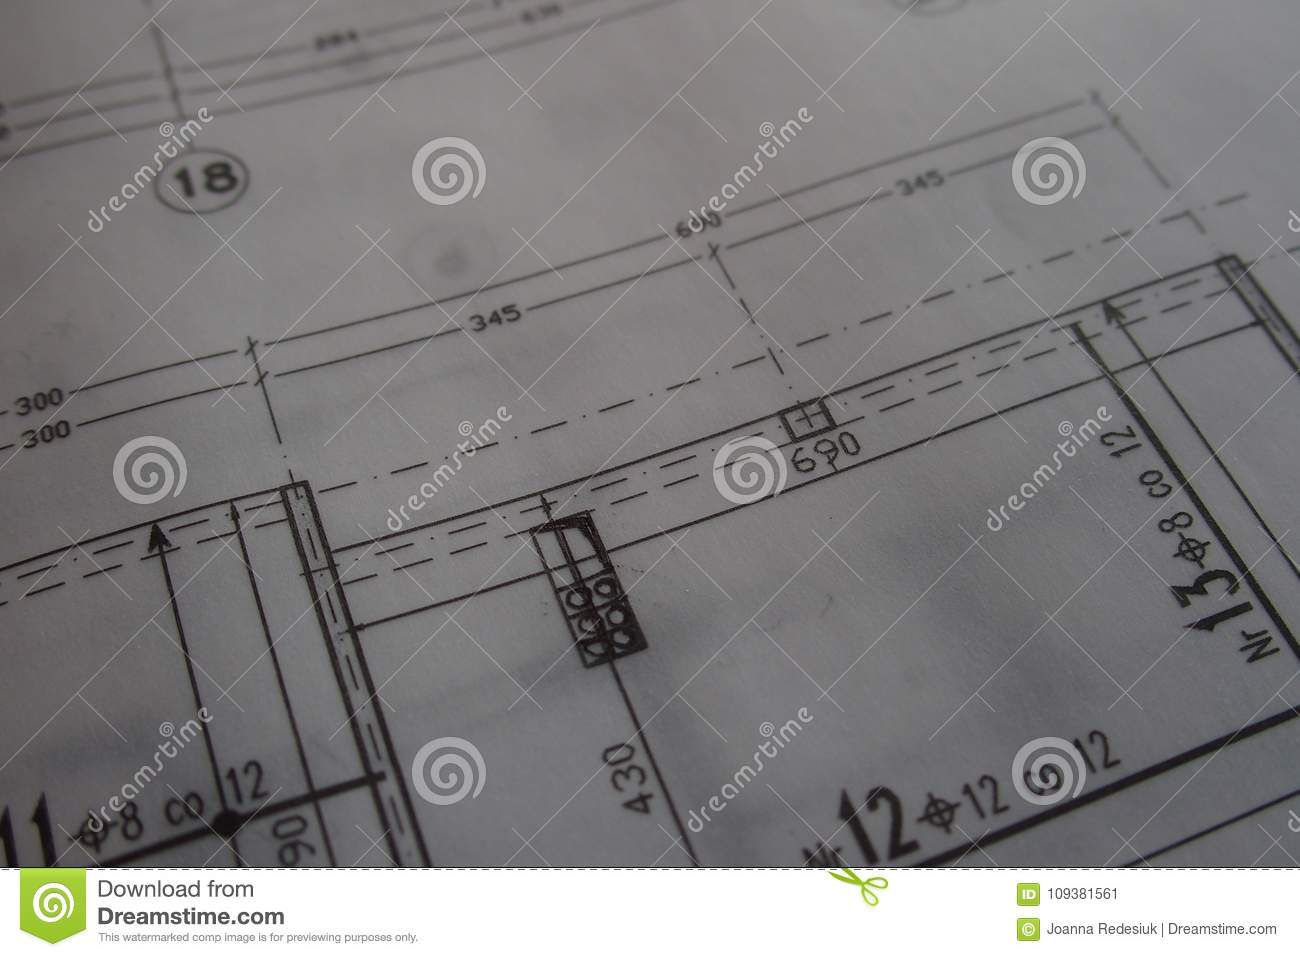 manual technical drawing made with a pencil on tracing paper stock rh dreamstime com Engineering Drawing Technical Drawing Tools